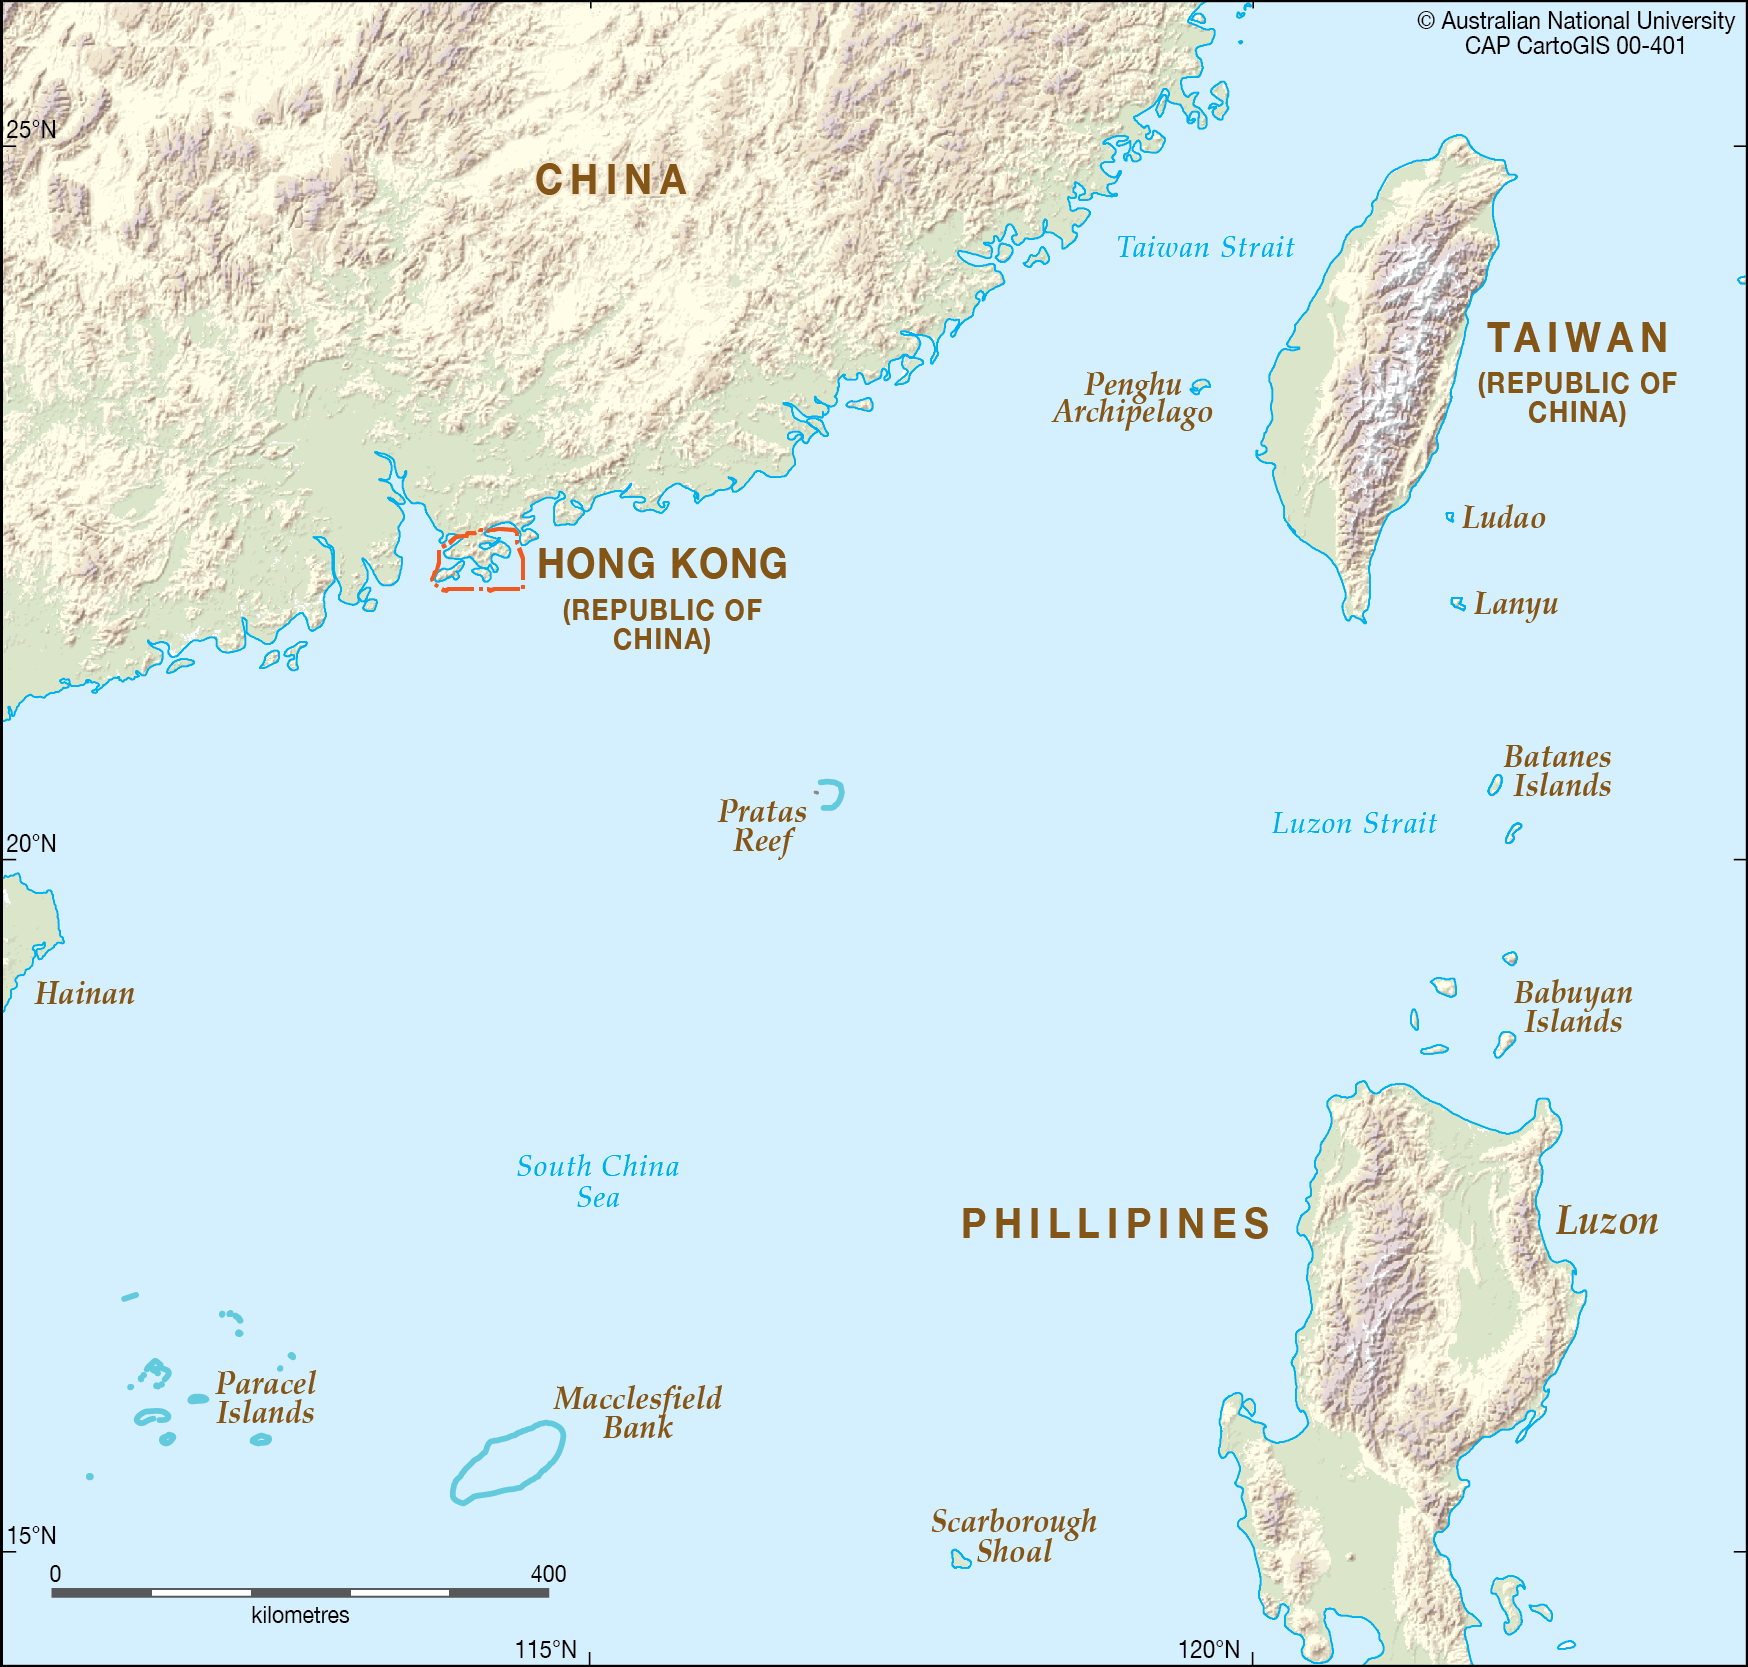 South China Sea - northern section - CartoGIS Services Maps